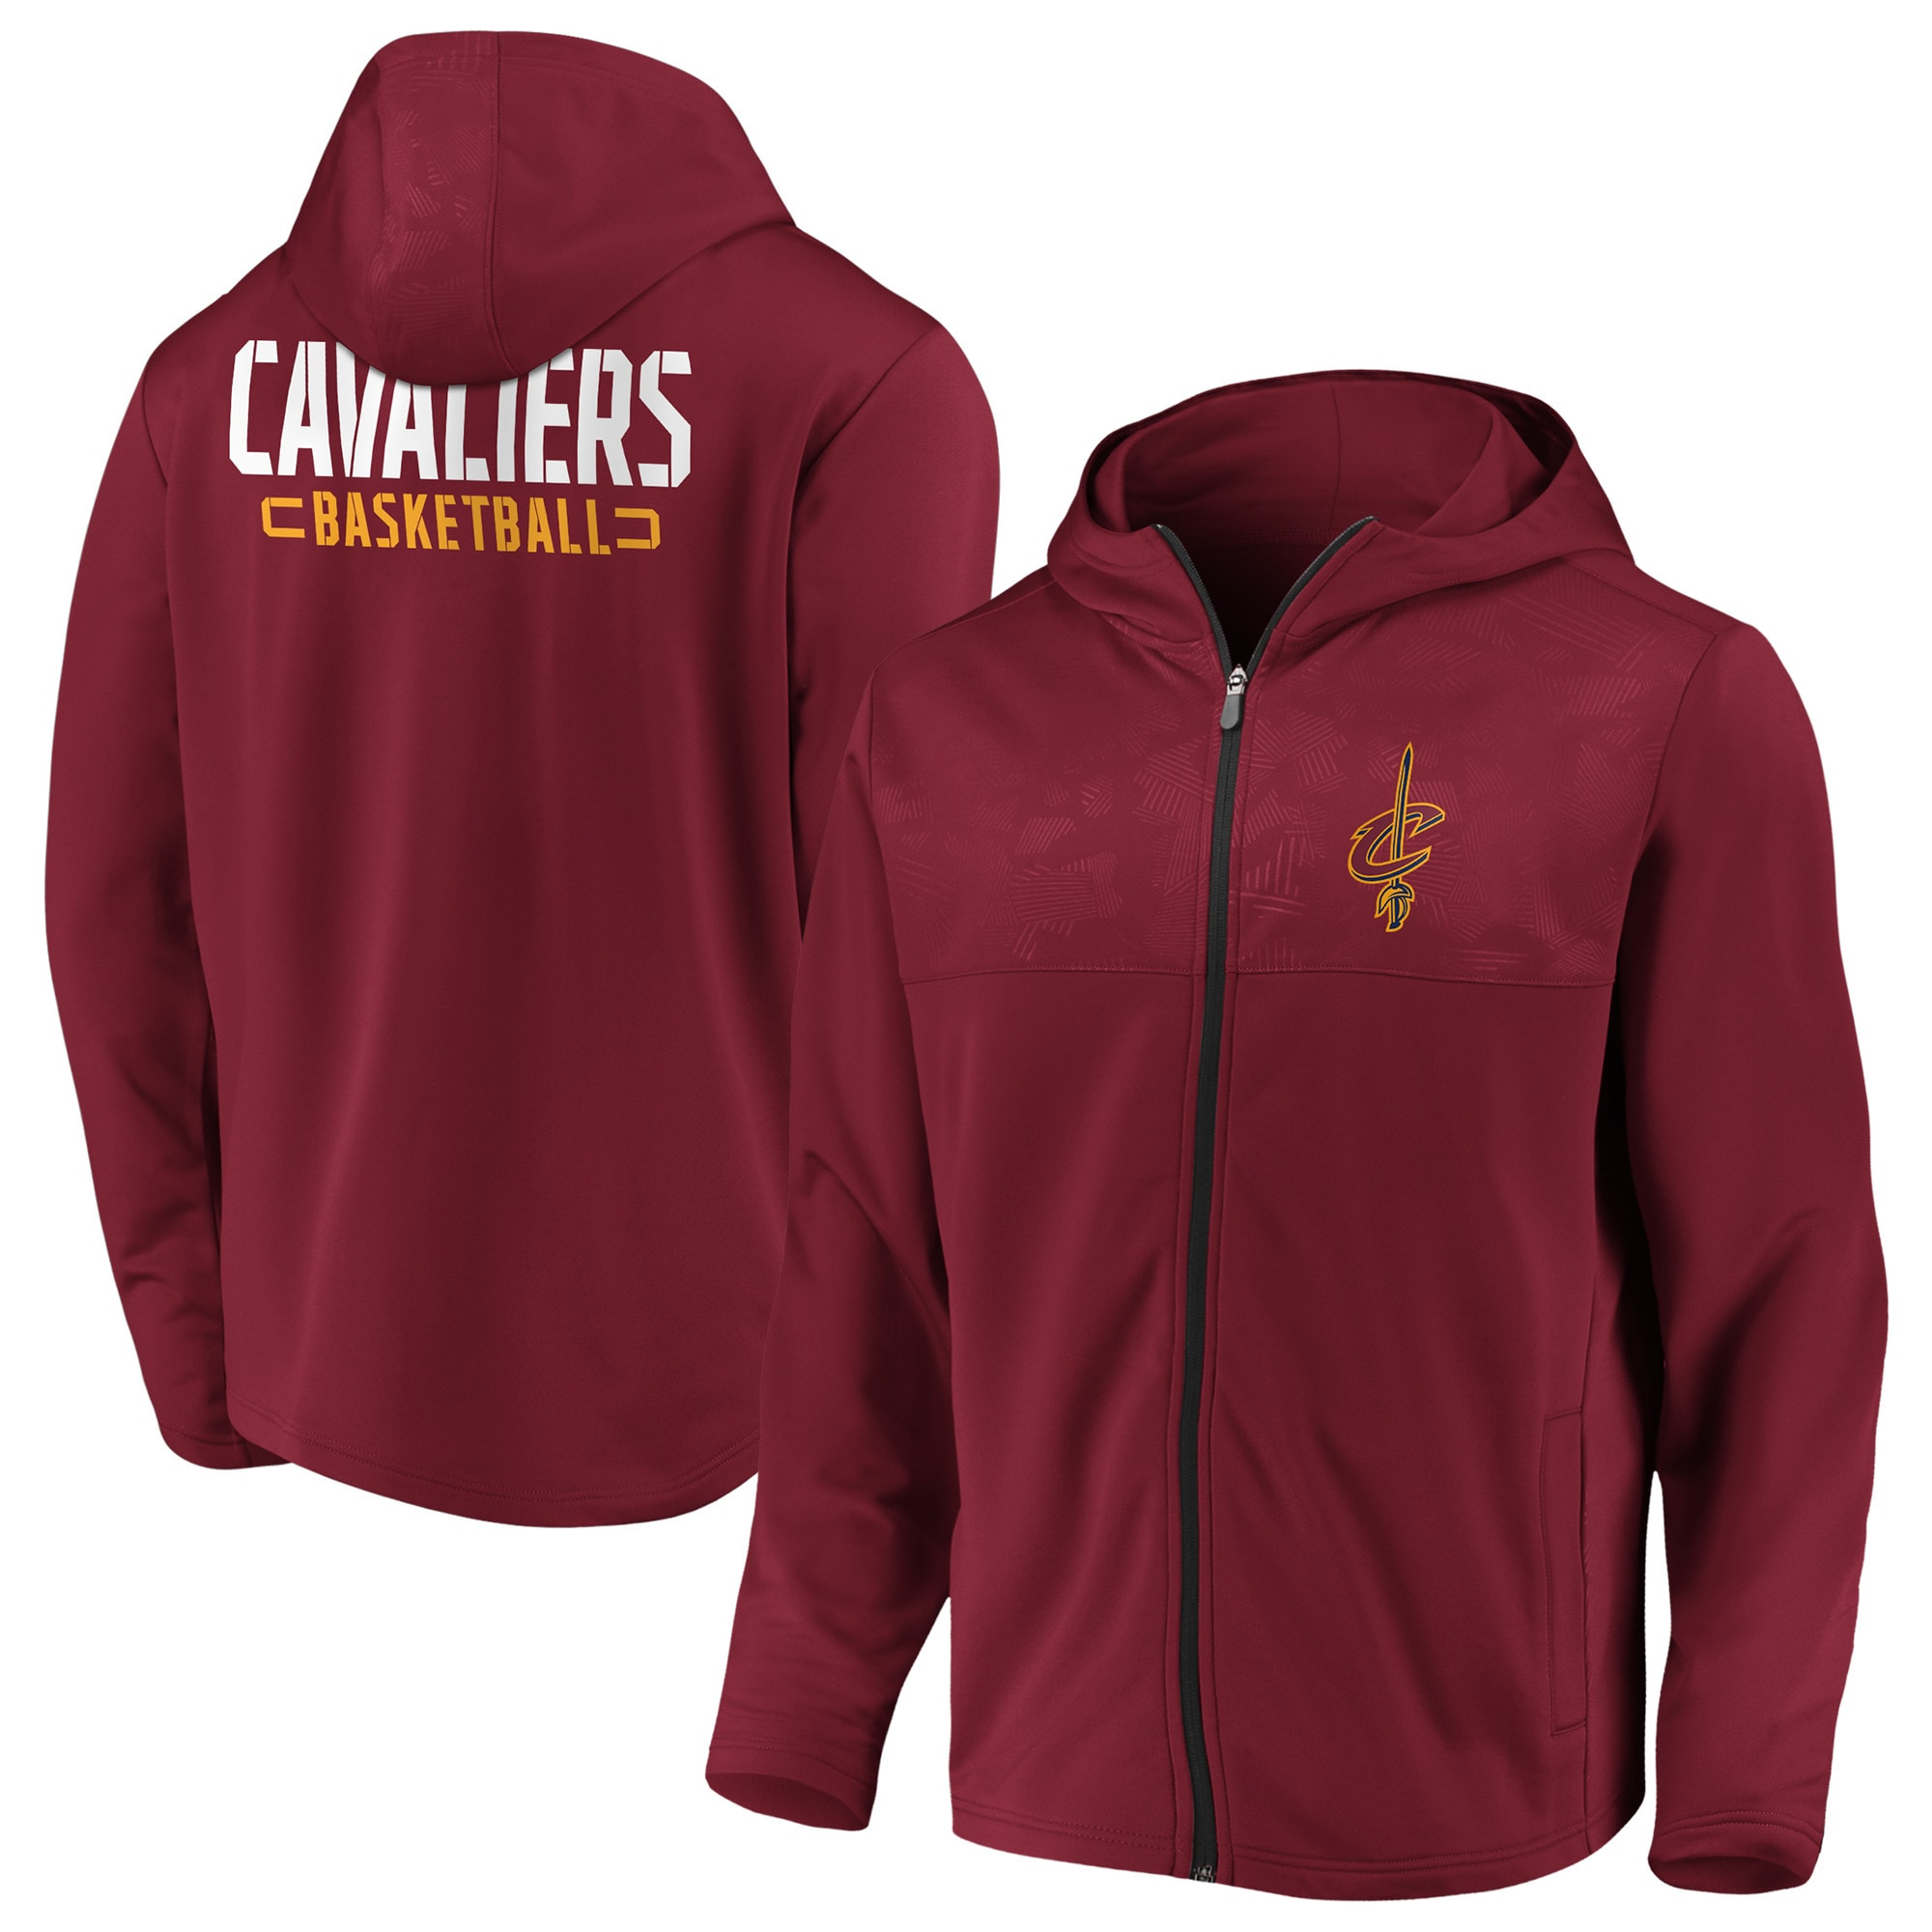 Cleveland Cavaliers Fanatics Branded Iconic Defender Mission Performance Primary Logo Full-Zip Hoodie - Wine